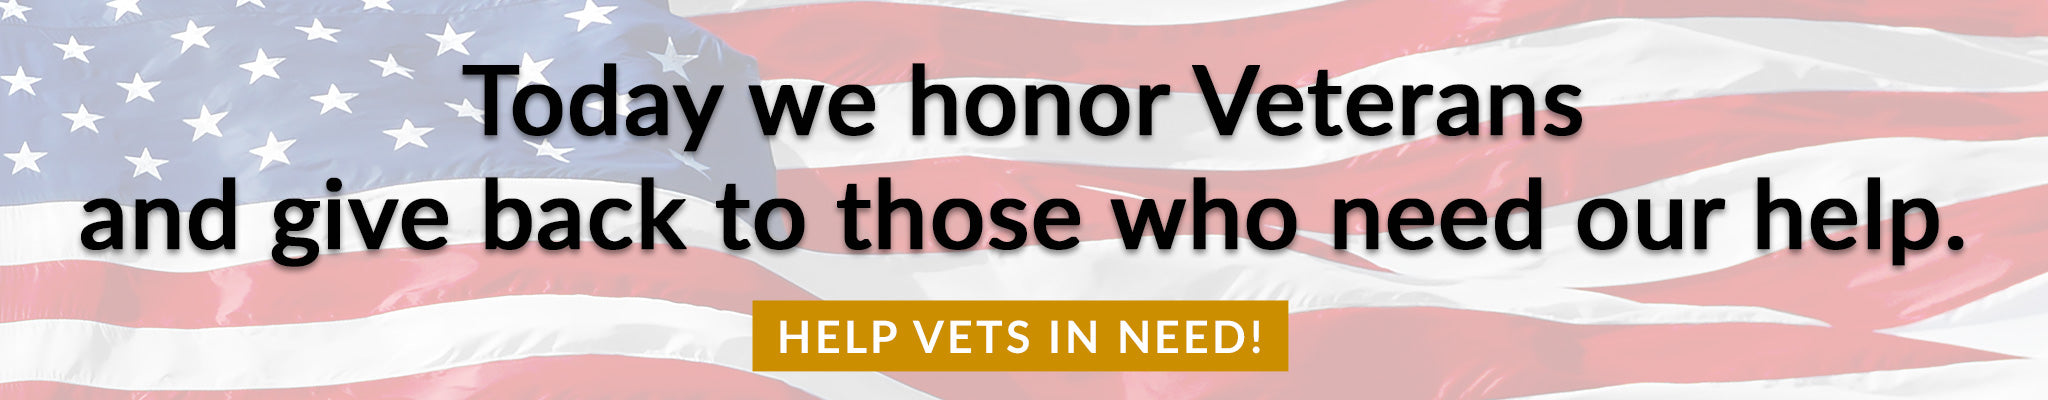 Today we honor veterans and give back to those who need our help | Help Vets in Need!